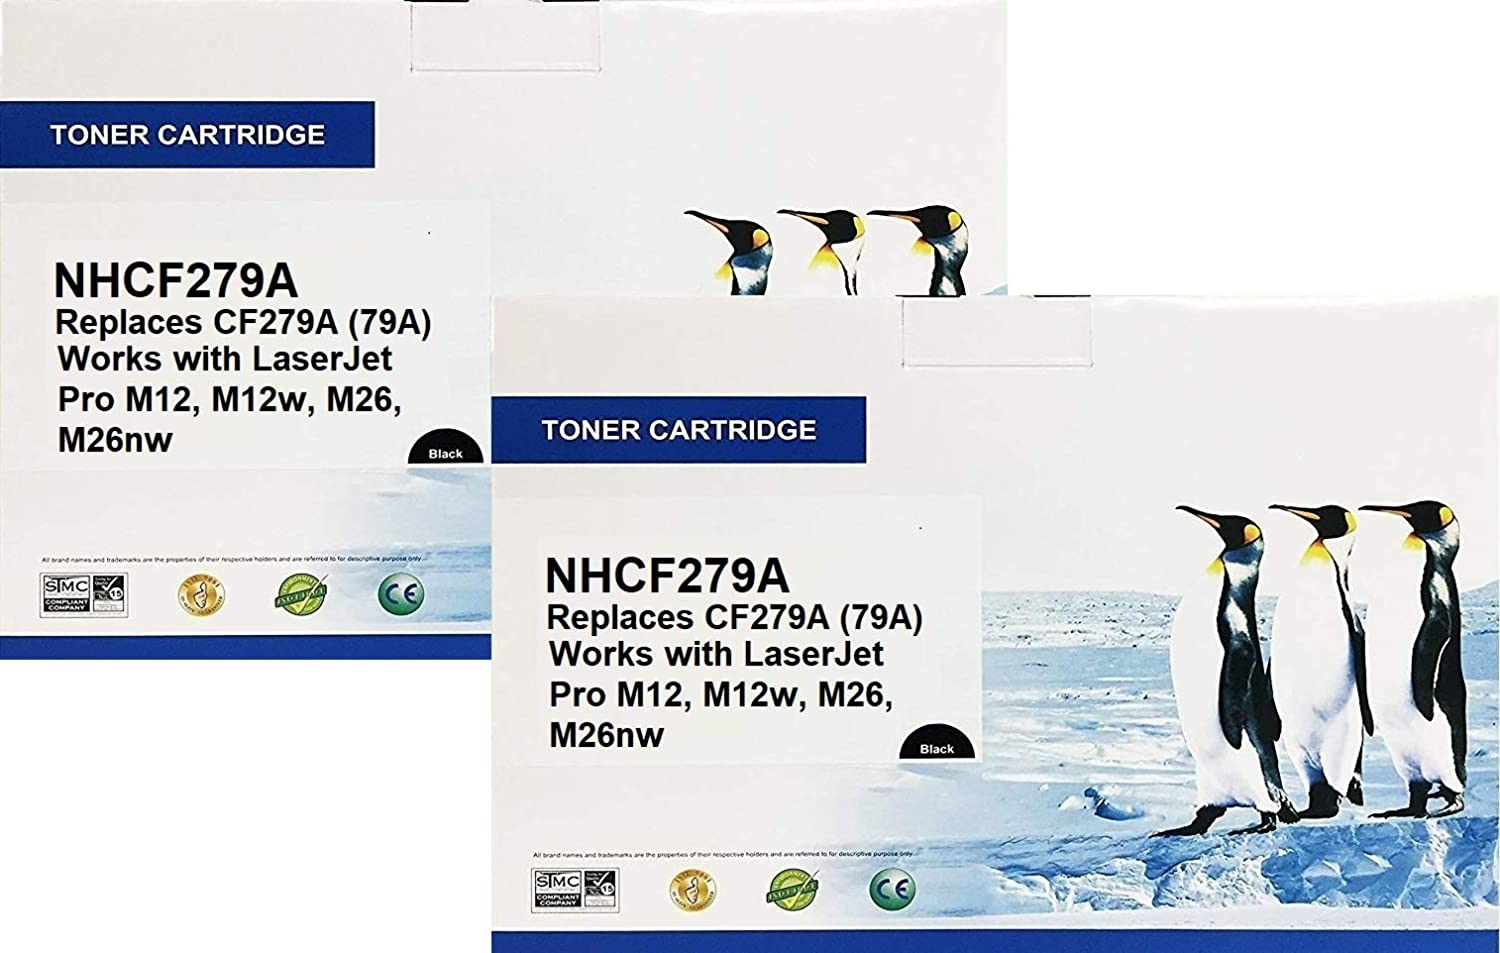 Search4Toner Compatible Replacements for HP CF279A, 79A, 2PK, Replaces HP CF279A, 79A, 2PK, Lower Cost Alternative to HP Brand, Overall Defect Rates Less Than 1%